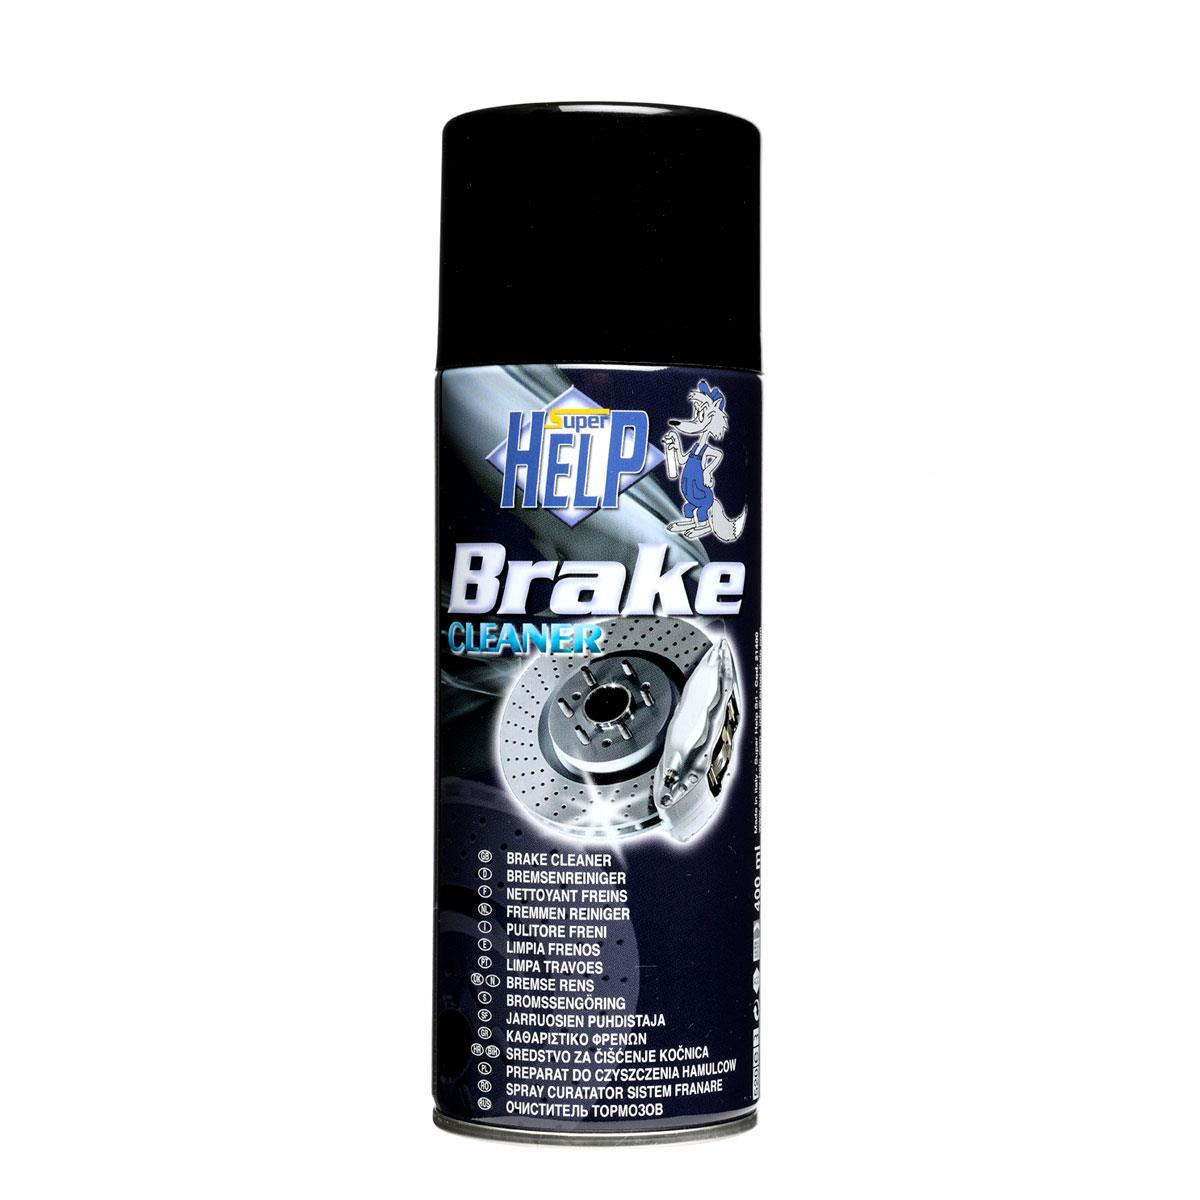 BRAKE CLEANER 0 Super Help